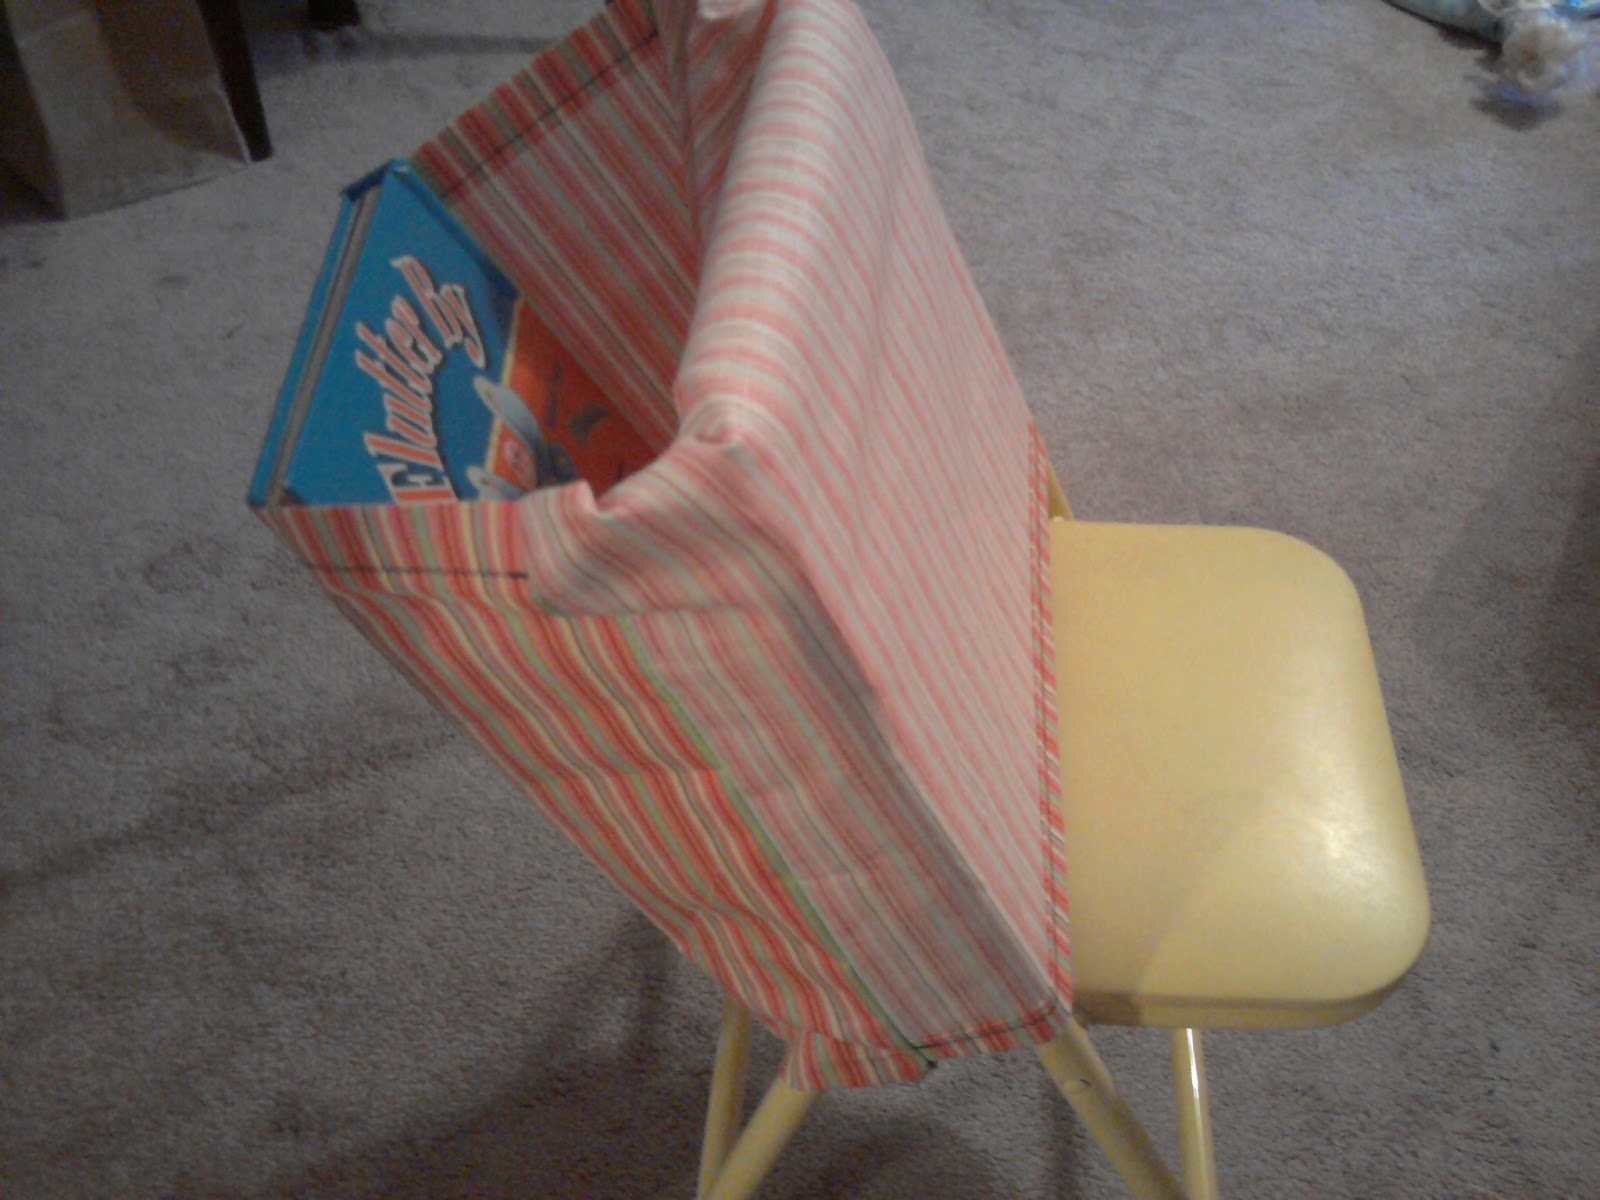 Chair Pocket Chair Pocket Tutorial Easy Peasy Lemon Squeezy Hello